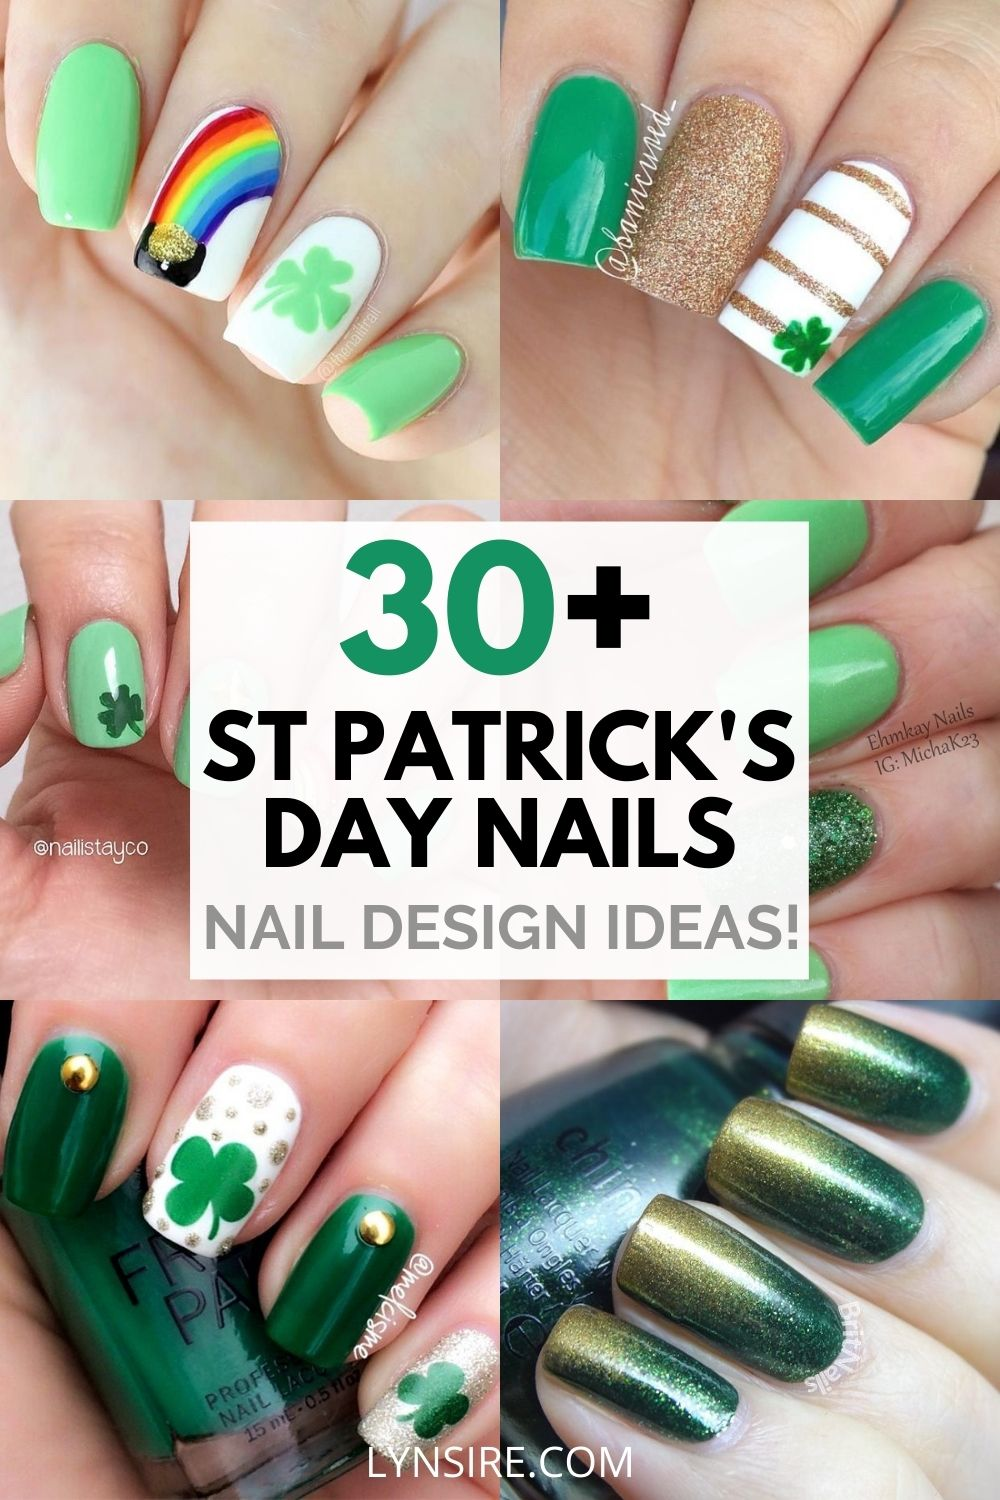 St Patrick's day nail polish